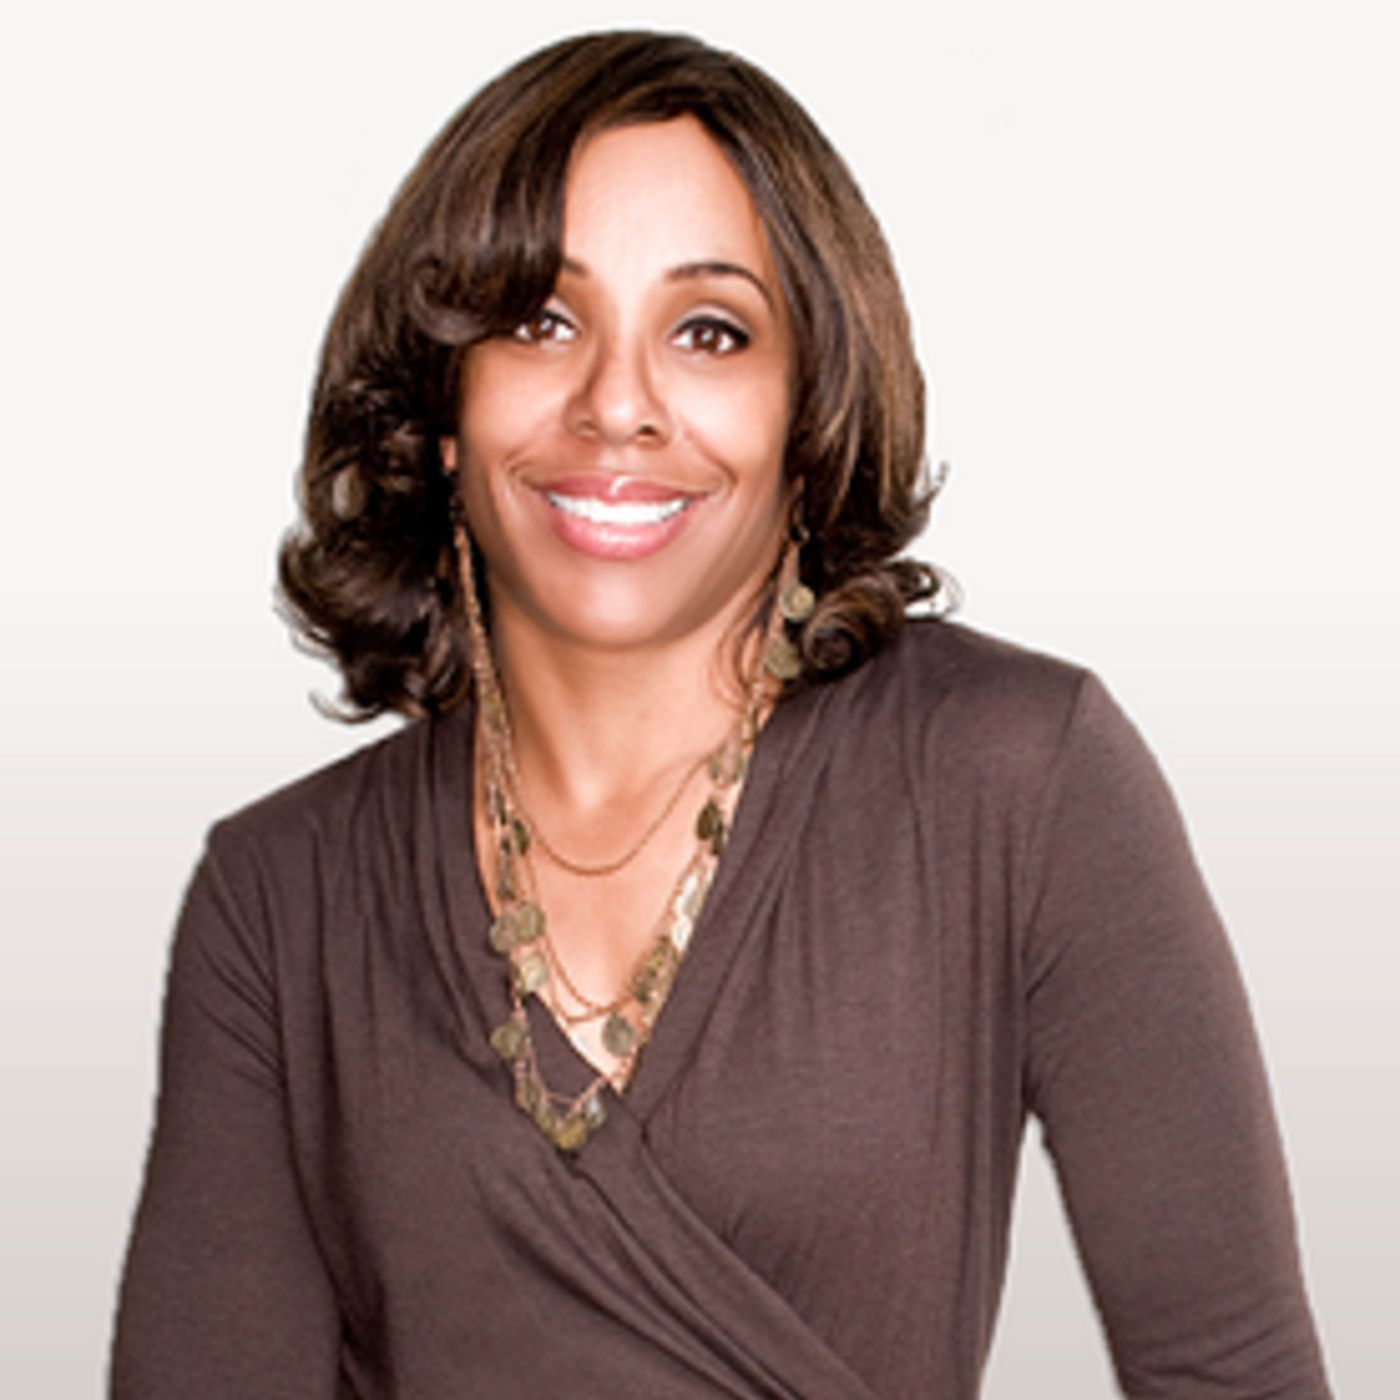 """Marala Scott: Oprah's Ambassador of Hope, Author- Intuition: """"How To Be Inspired During The Holidays Through Tough Times""""_11/23/14"""